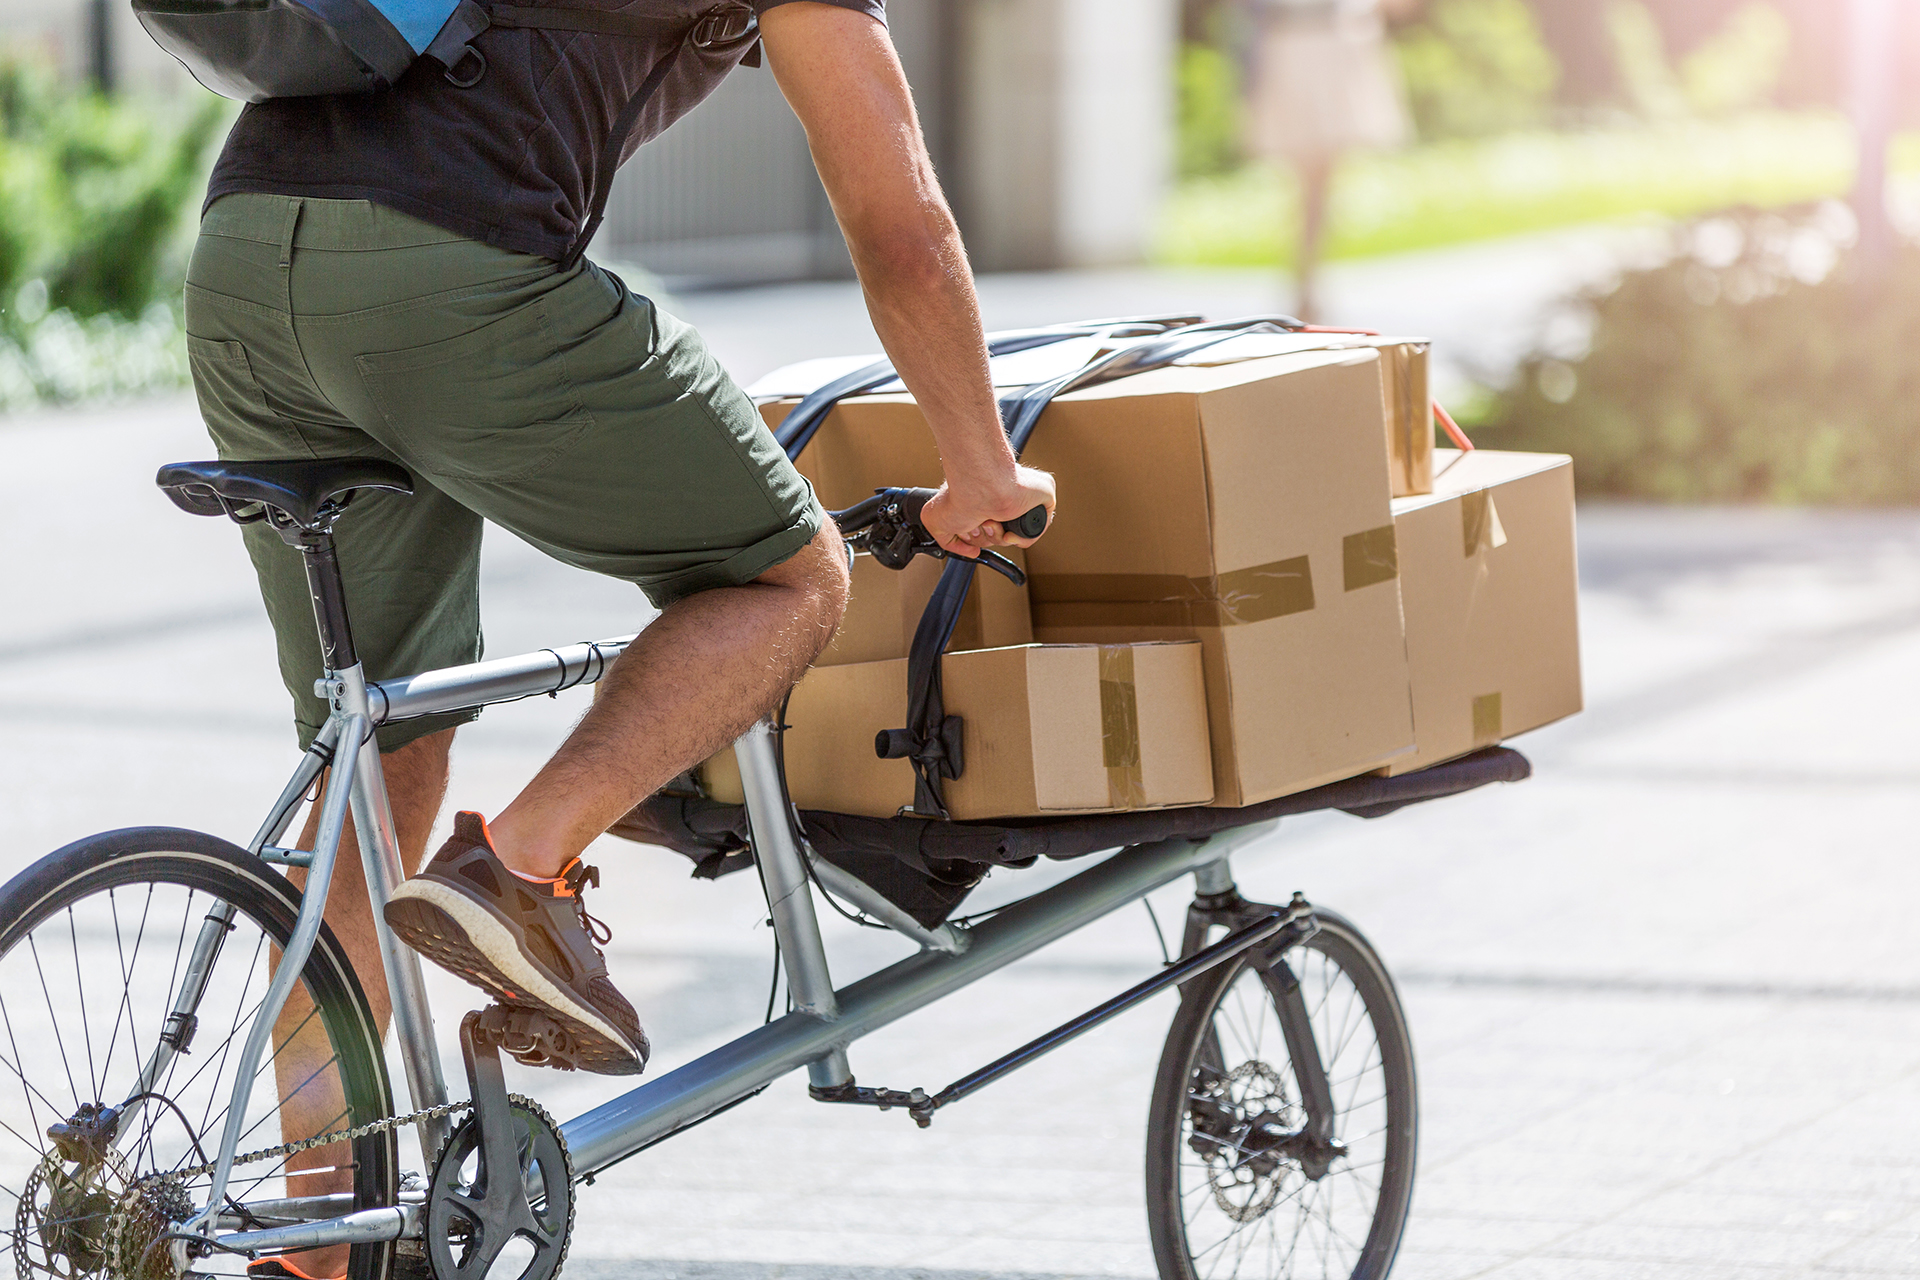 Bicycle deliveries